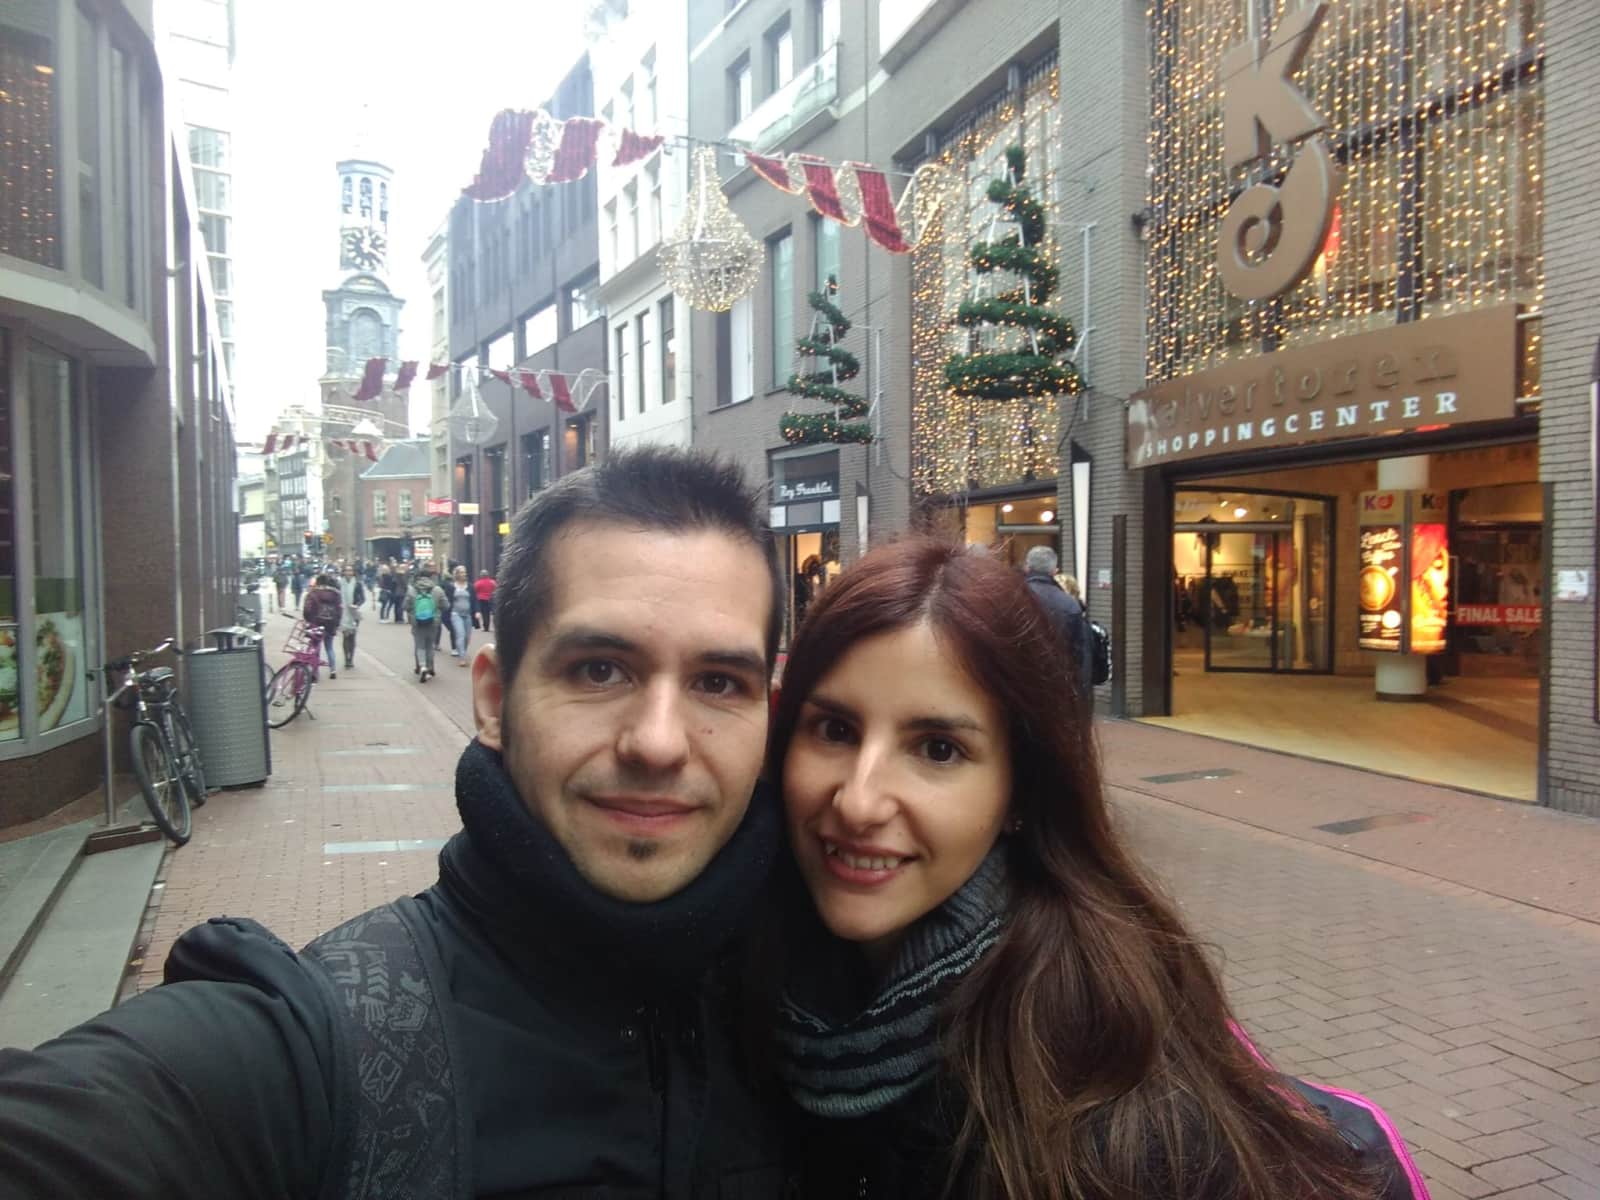 Maria & pablo from Worcester, United Kingdom